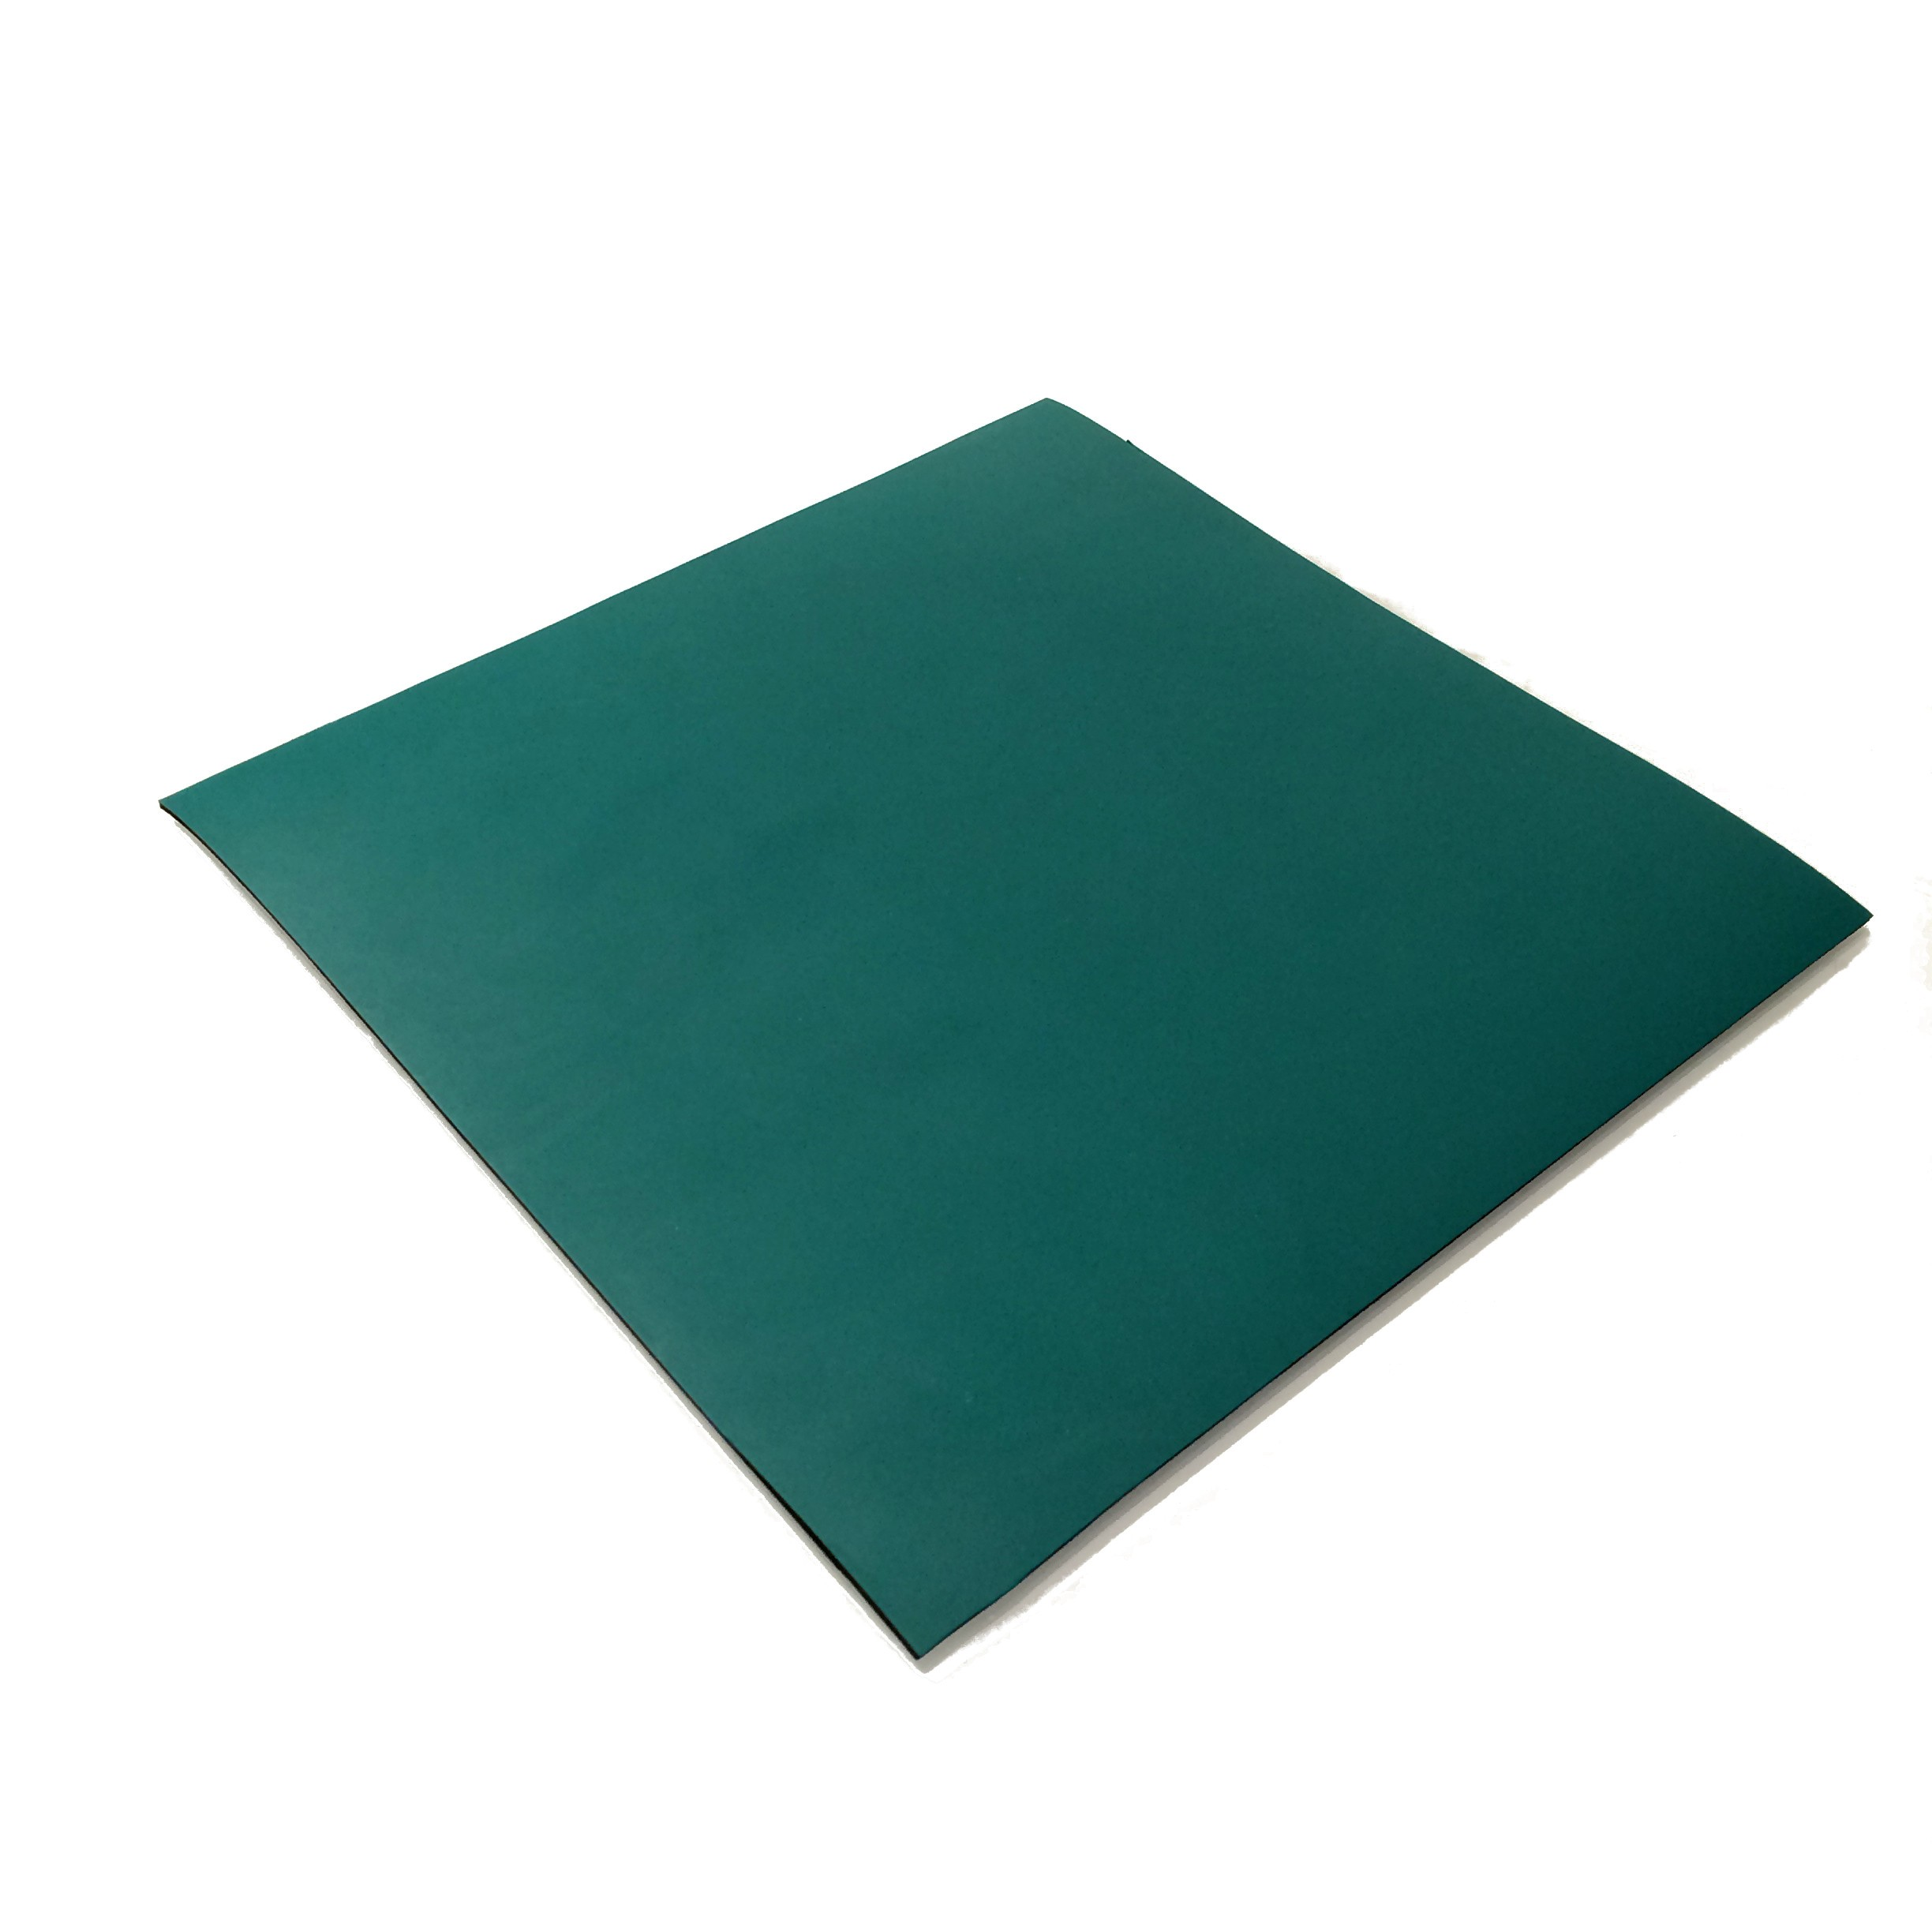 Anti Static Mat - 8 inch x 8 inch - Tinkersphere